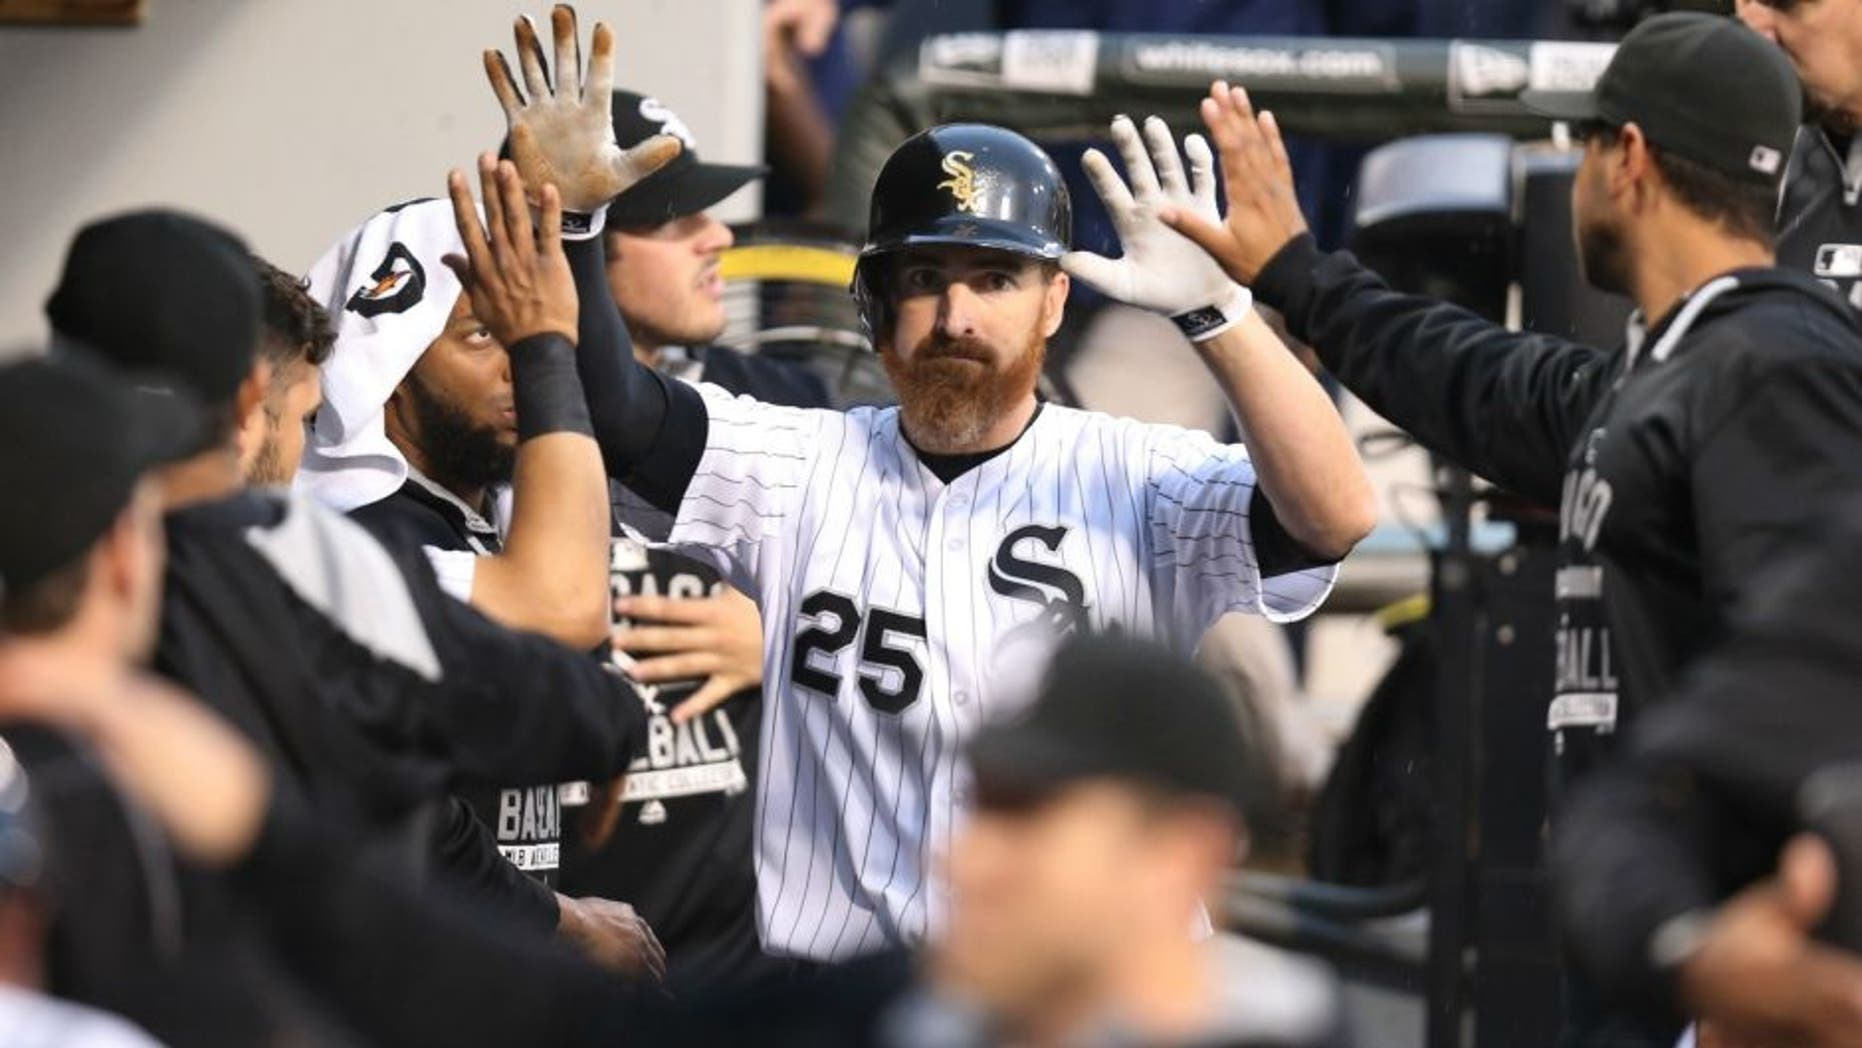 The Chicago White Sox's Adam LaRoche (25) is congratulated by teammates after his two-run double in the first inning against the Toronto Blue Jays at U.S. Cellular Field in Chicago on Wednesday, July 8, 2015. (Chris Sweda/Chicago Tribune/TNS),The Chicago White Sox's Adam LaRoche (25) is congratulated by teammates after his two-run double in the first inning against the Toronto Blue Jays at U.S. Cellular Field in Chicago on Wednesday, July 8, 2015. (Chris Sweda/Chicago Tribune/TNS via Getty Images)